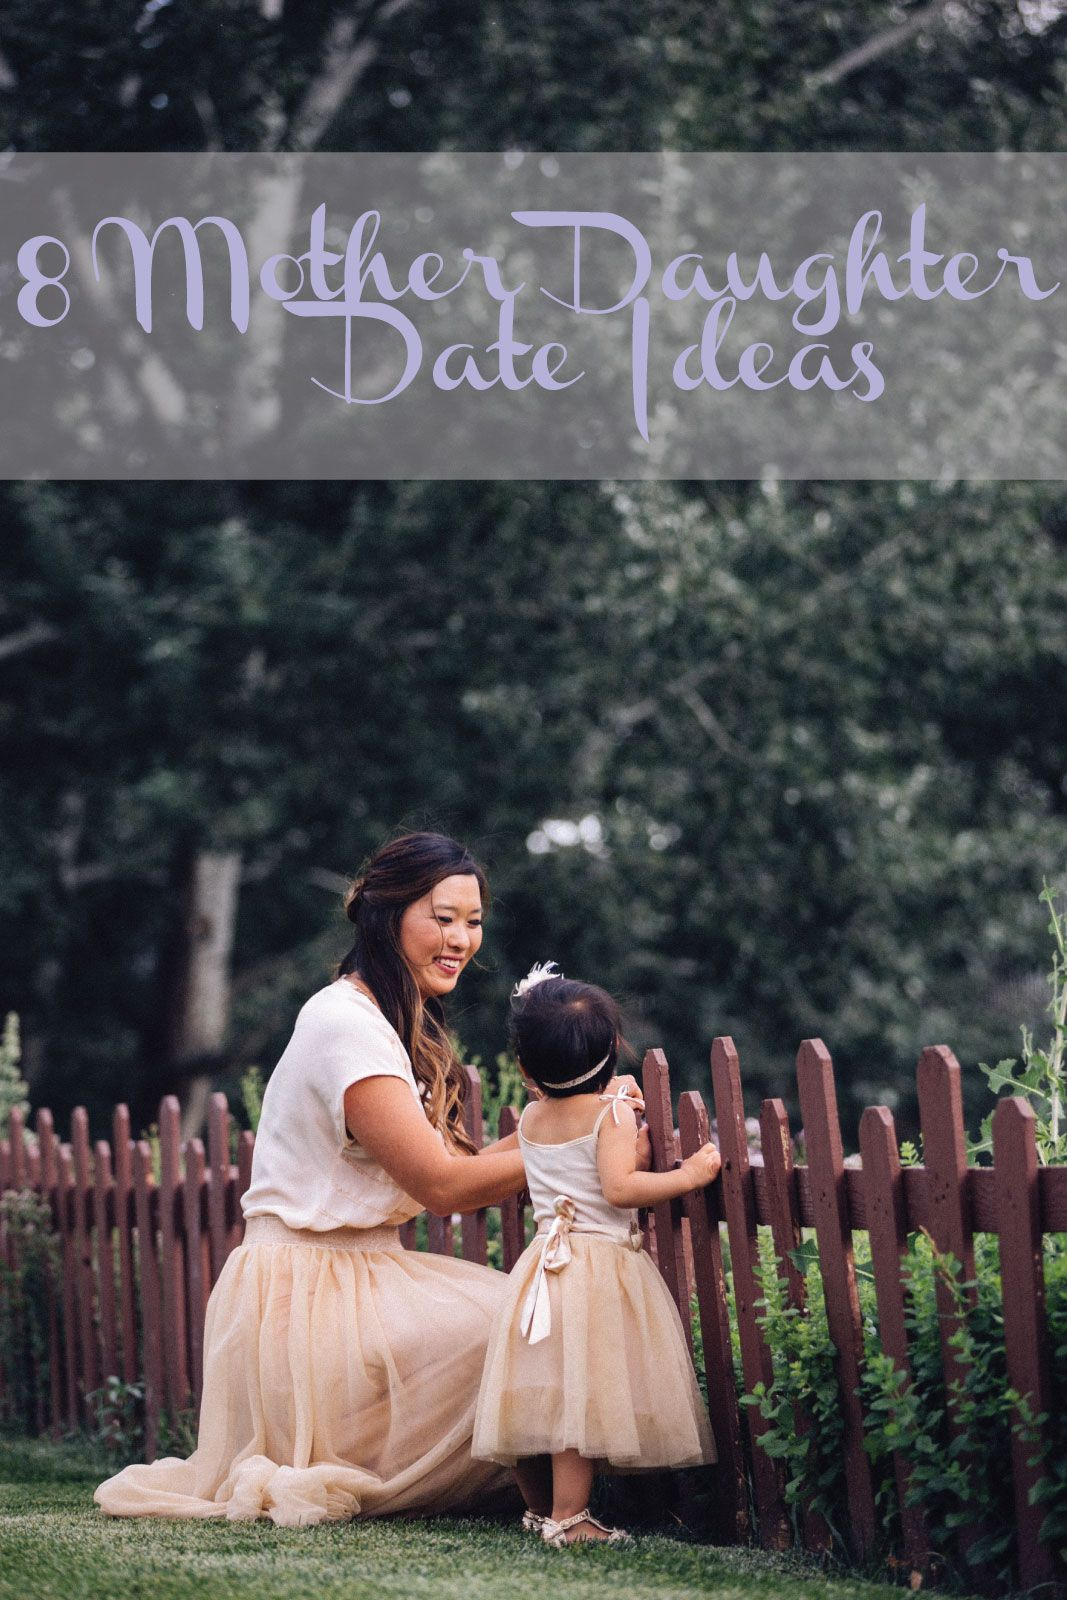 8 mother daughter date ideas + linkup | mommy + me style | pinterest